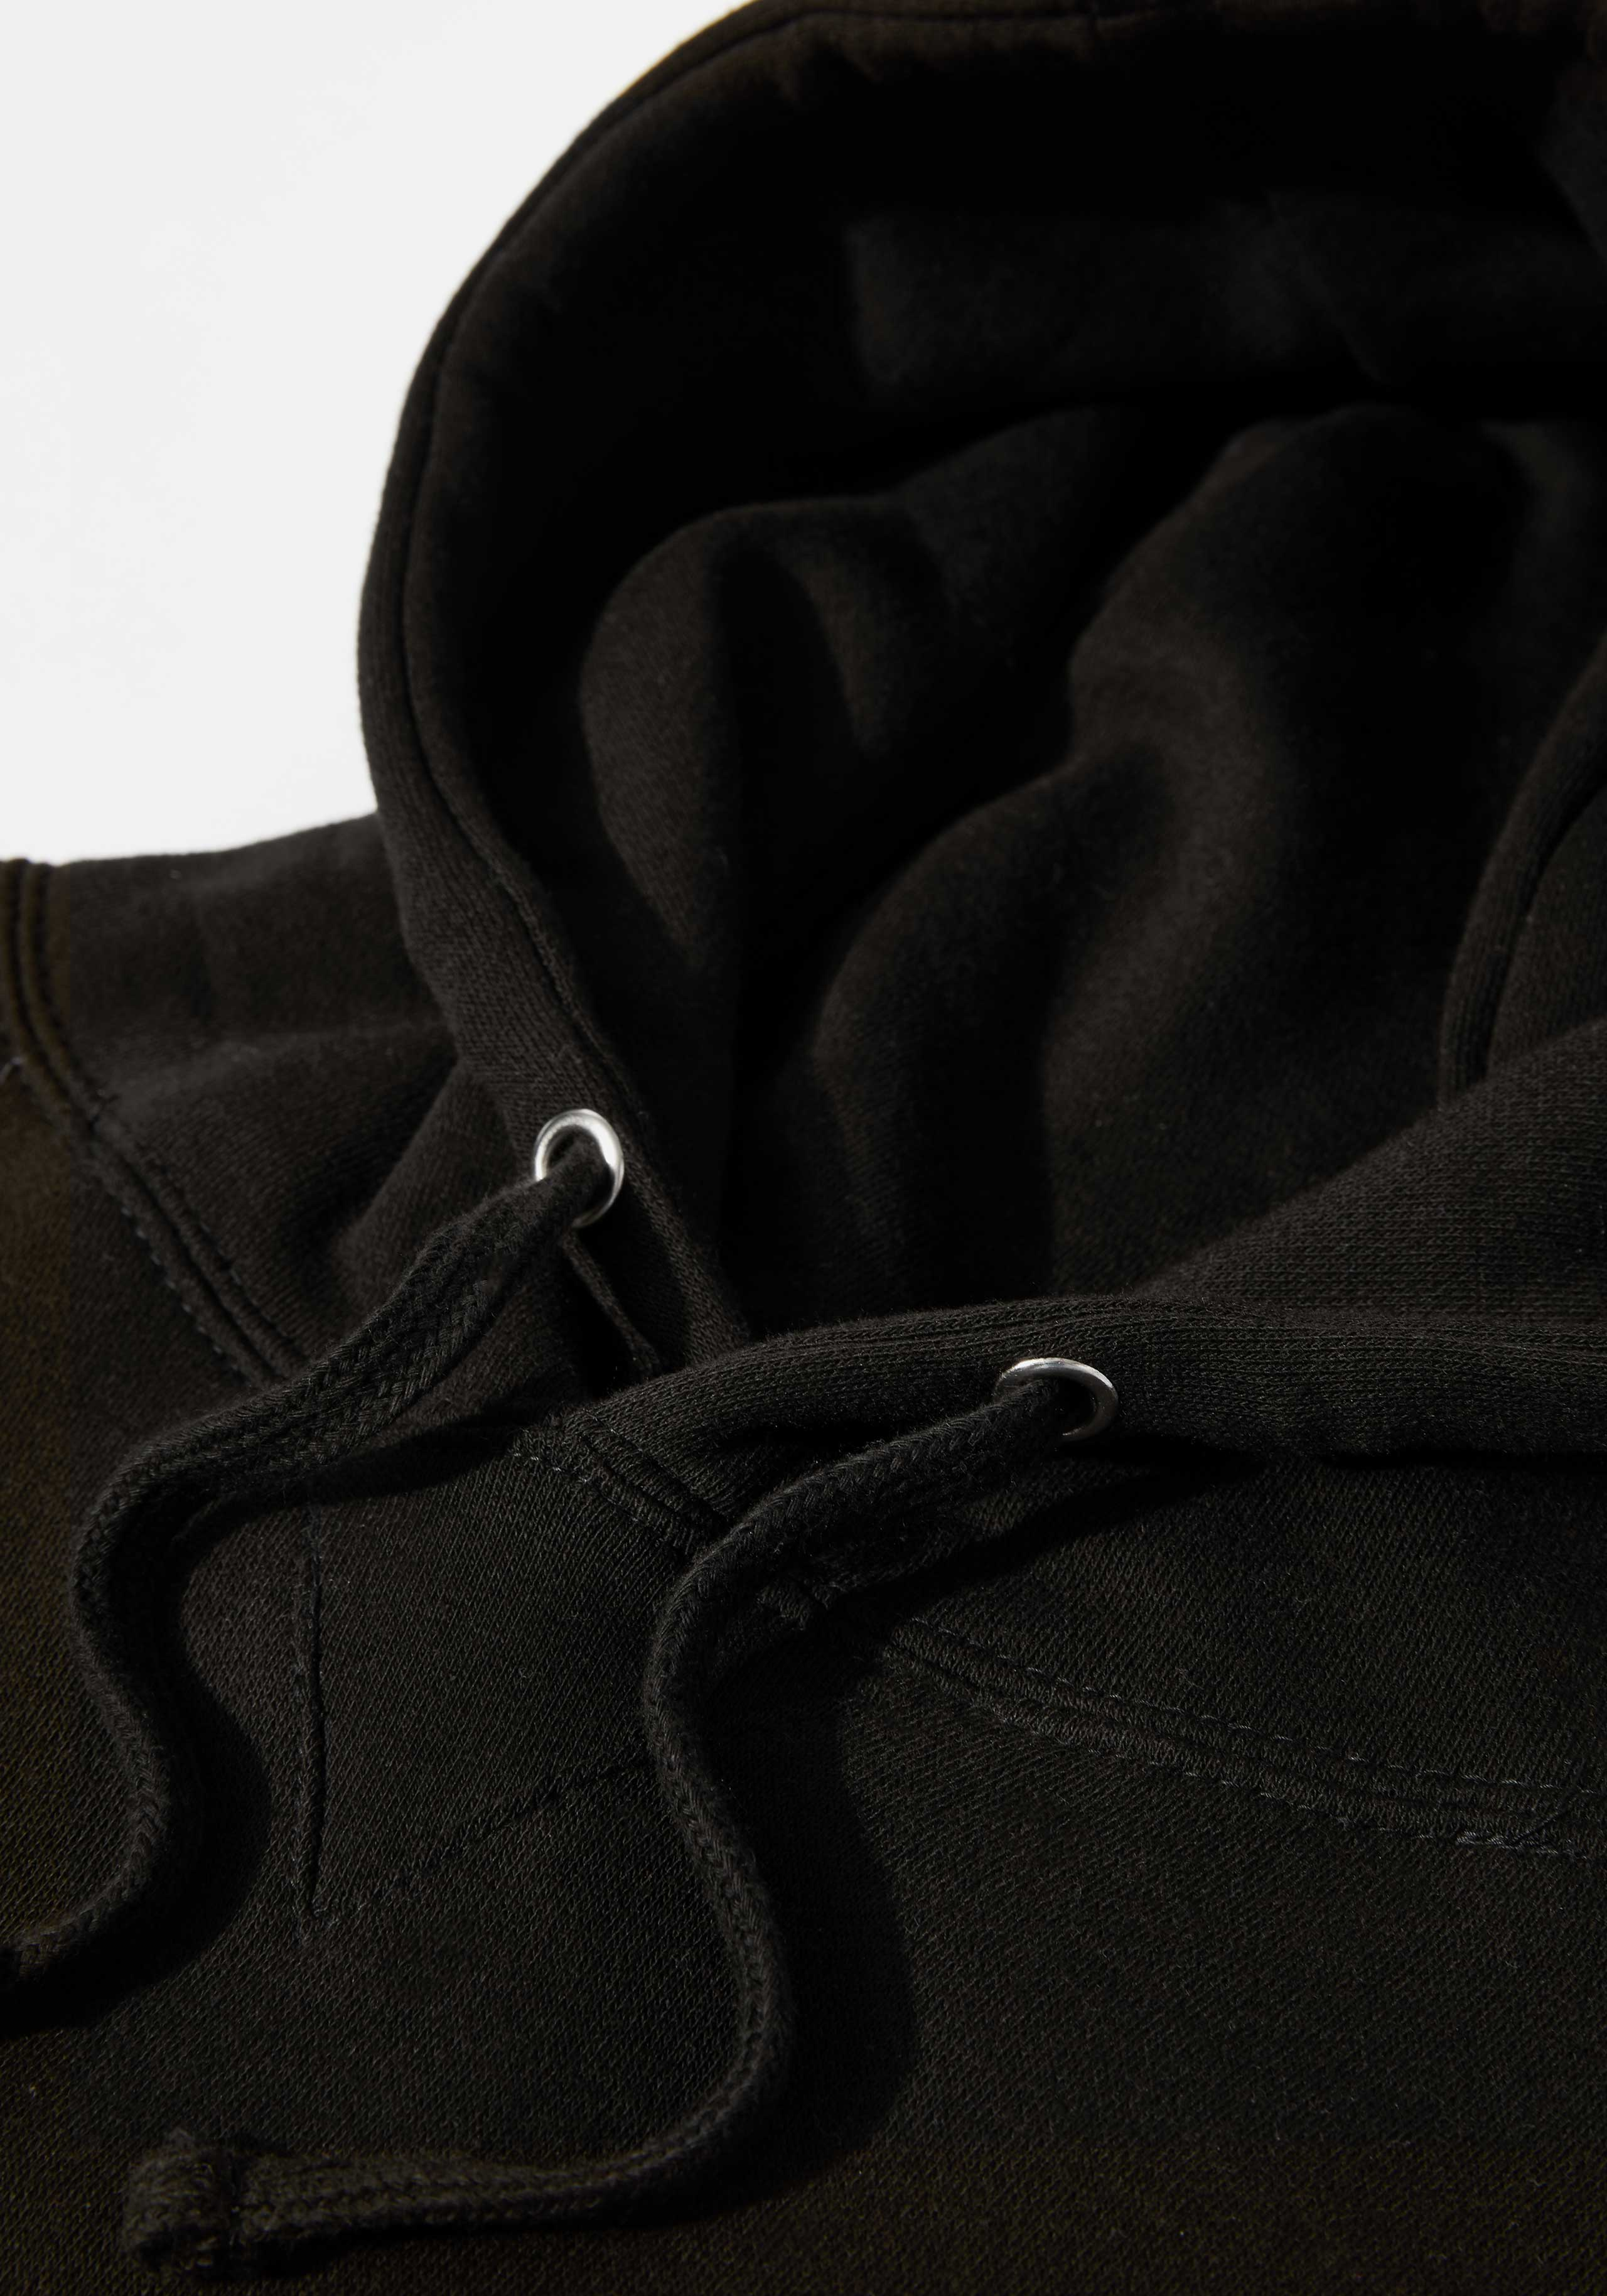 mki article hoody 3